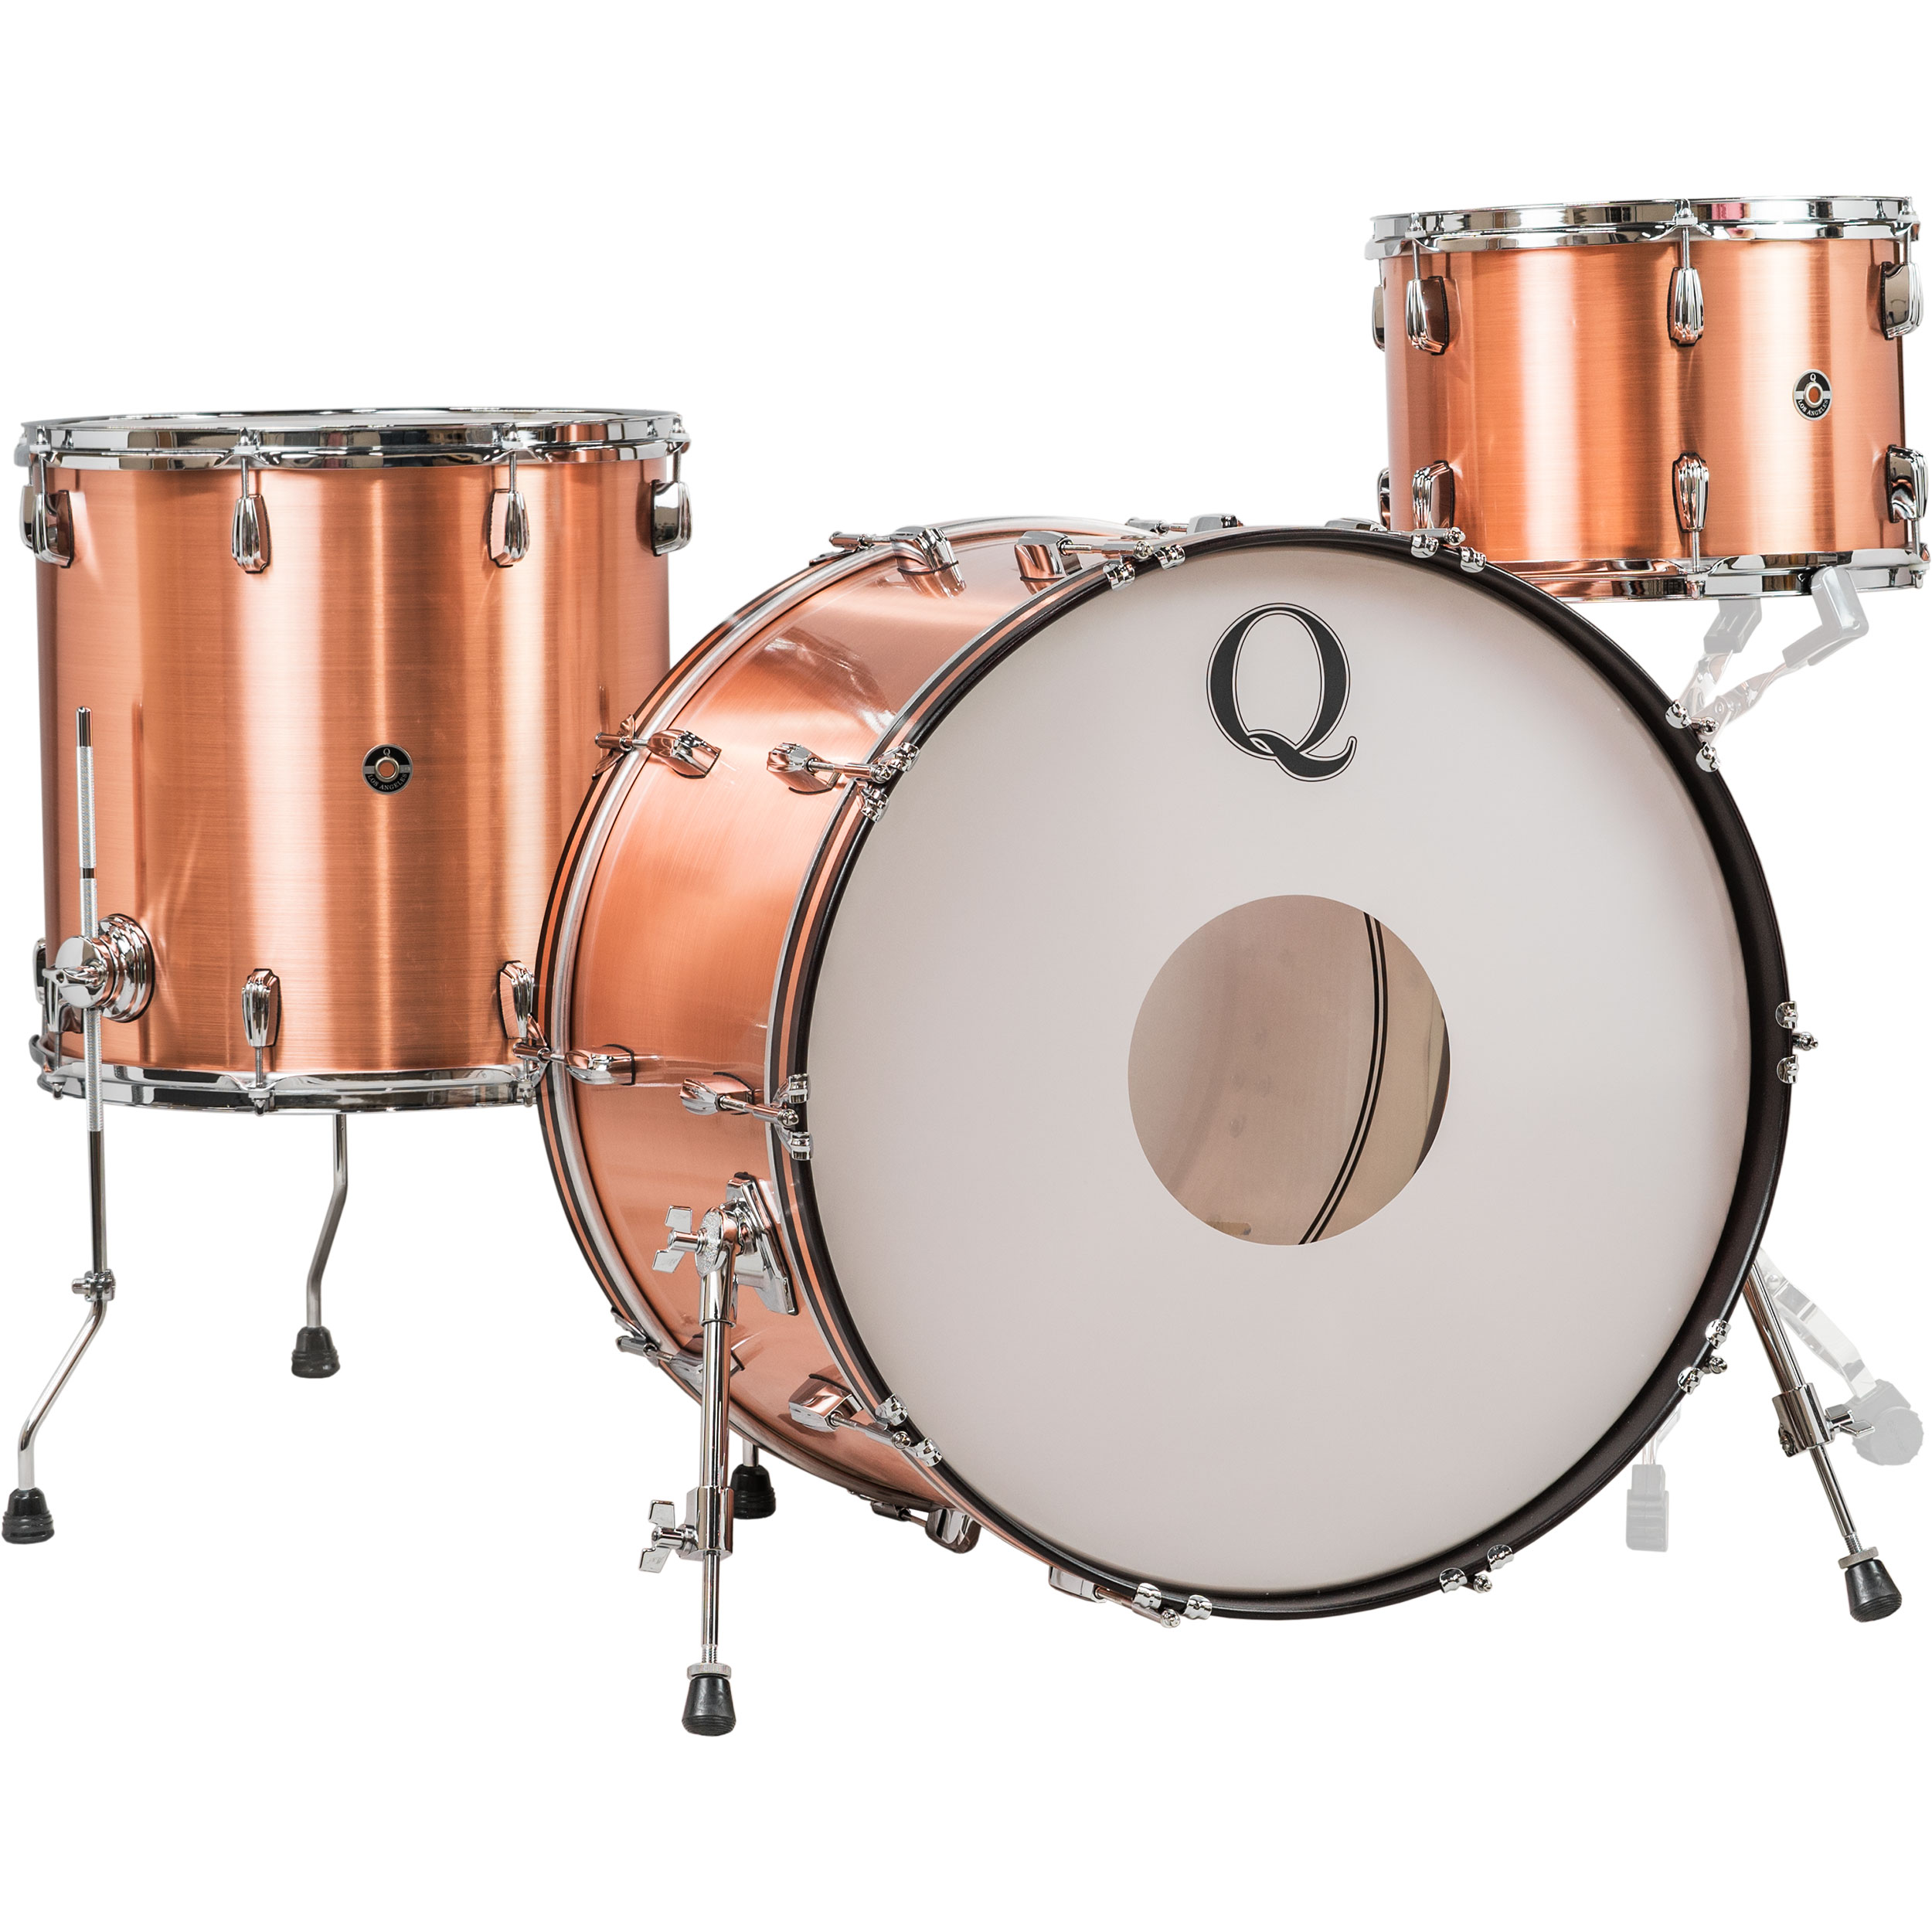 "Q Drum Co. 3-Piece Copper Drum Set Shell Pack (24"" Bass, 13/16"" Toms) in Raw Finish"